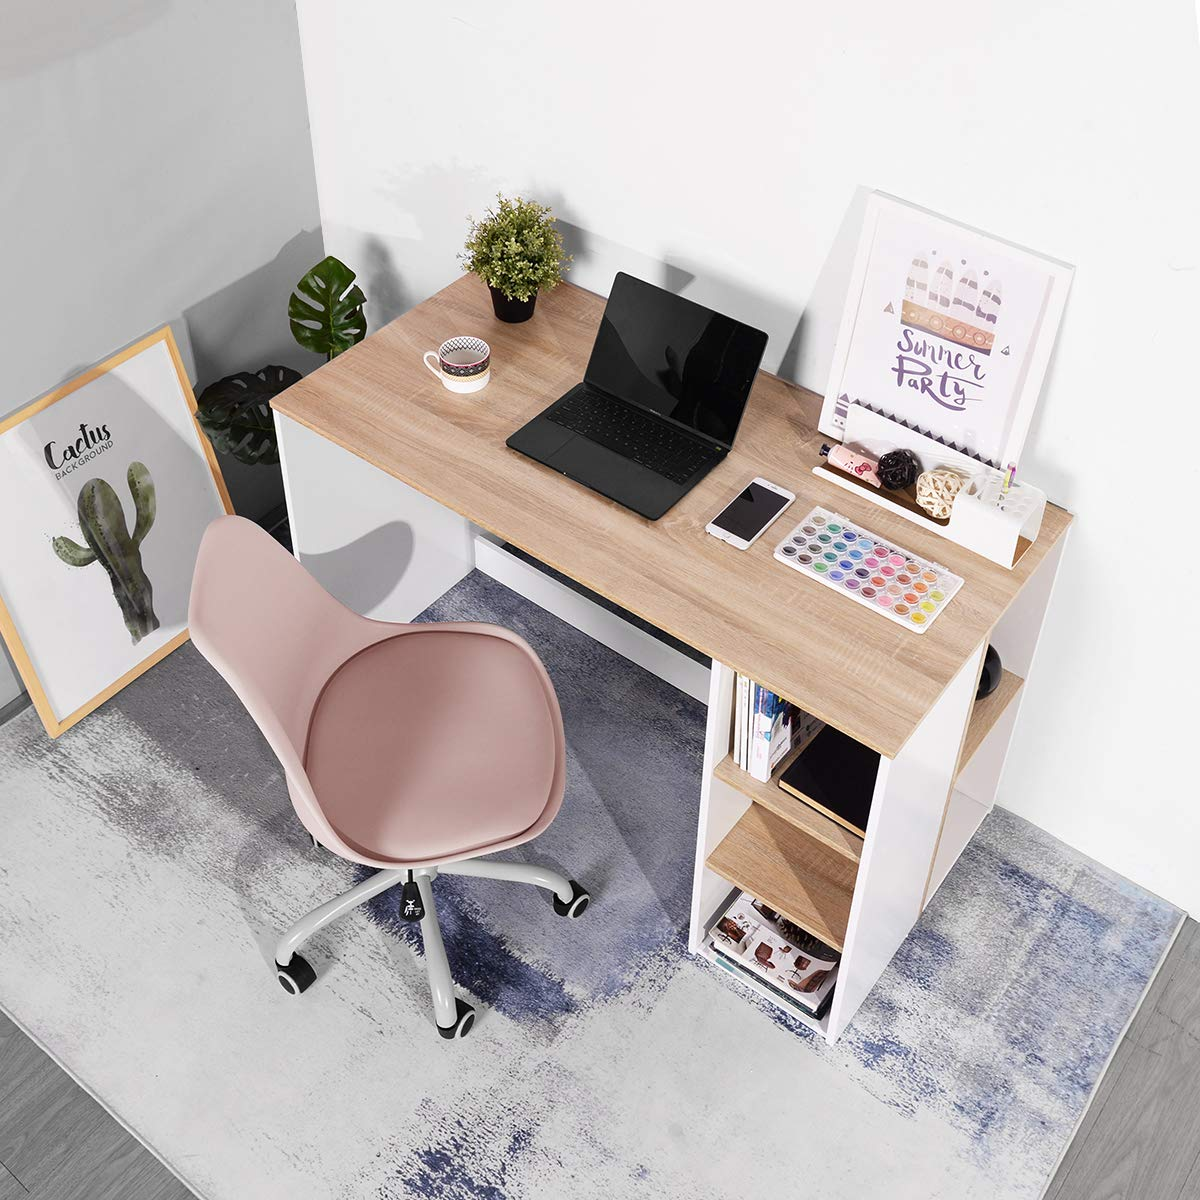 Coavas Office-Computer Desk with Storage, Study-Work Desk with 5 Shelves, Students-Writing Desk Home Laptop Study Table Modern Wood Hutch Large Workstation with Bookcase BREN11 /Beech and White by Coavas (Image #9)